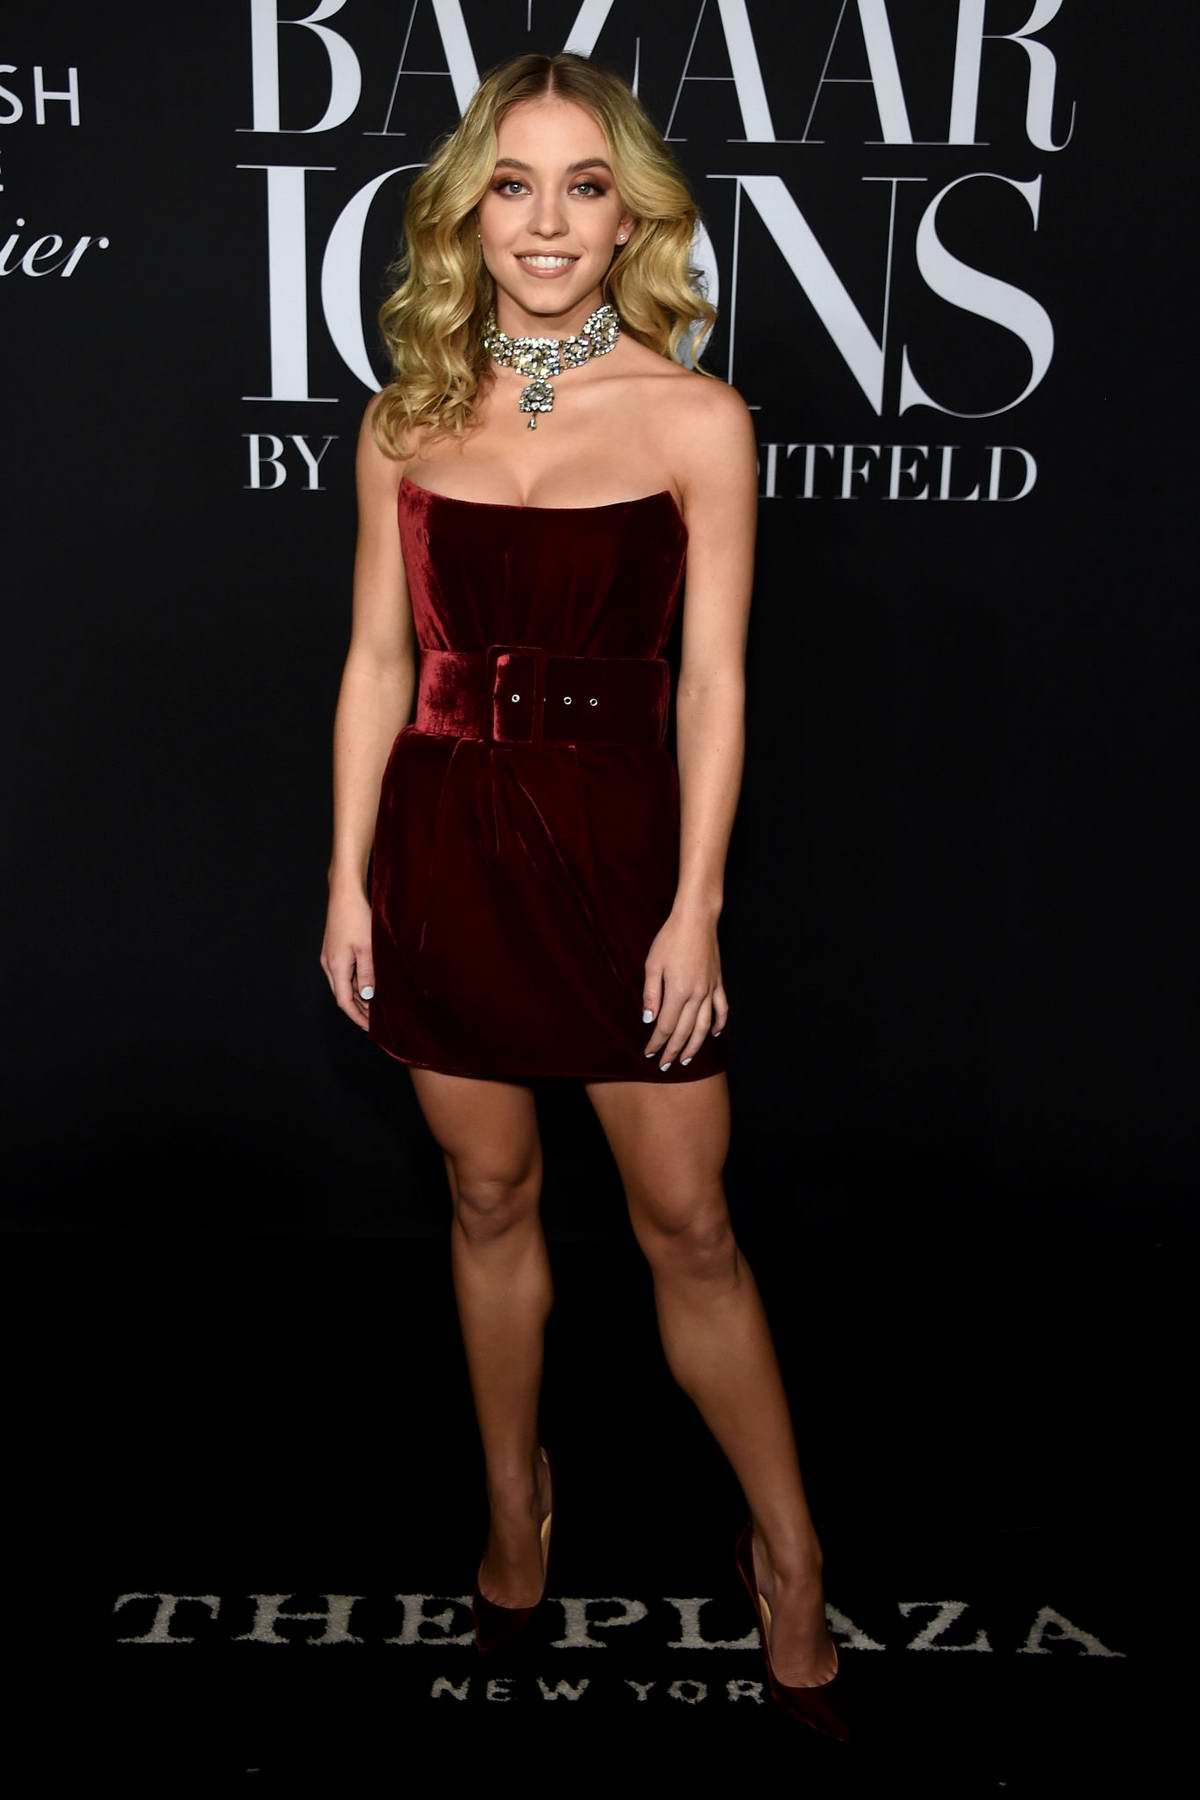 Sydney Sweeney attends the 2019 Harper's Bazaar ICONS Party at The Plaza Hotel in New York City